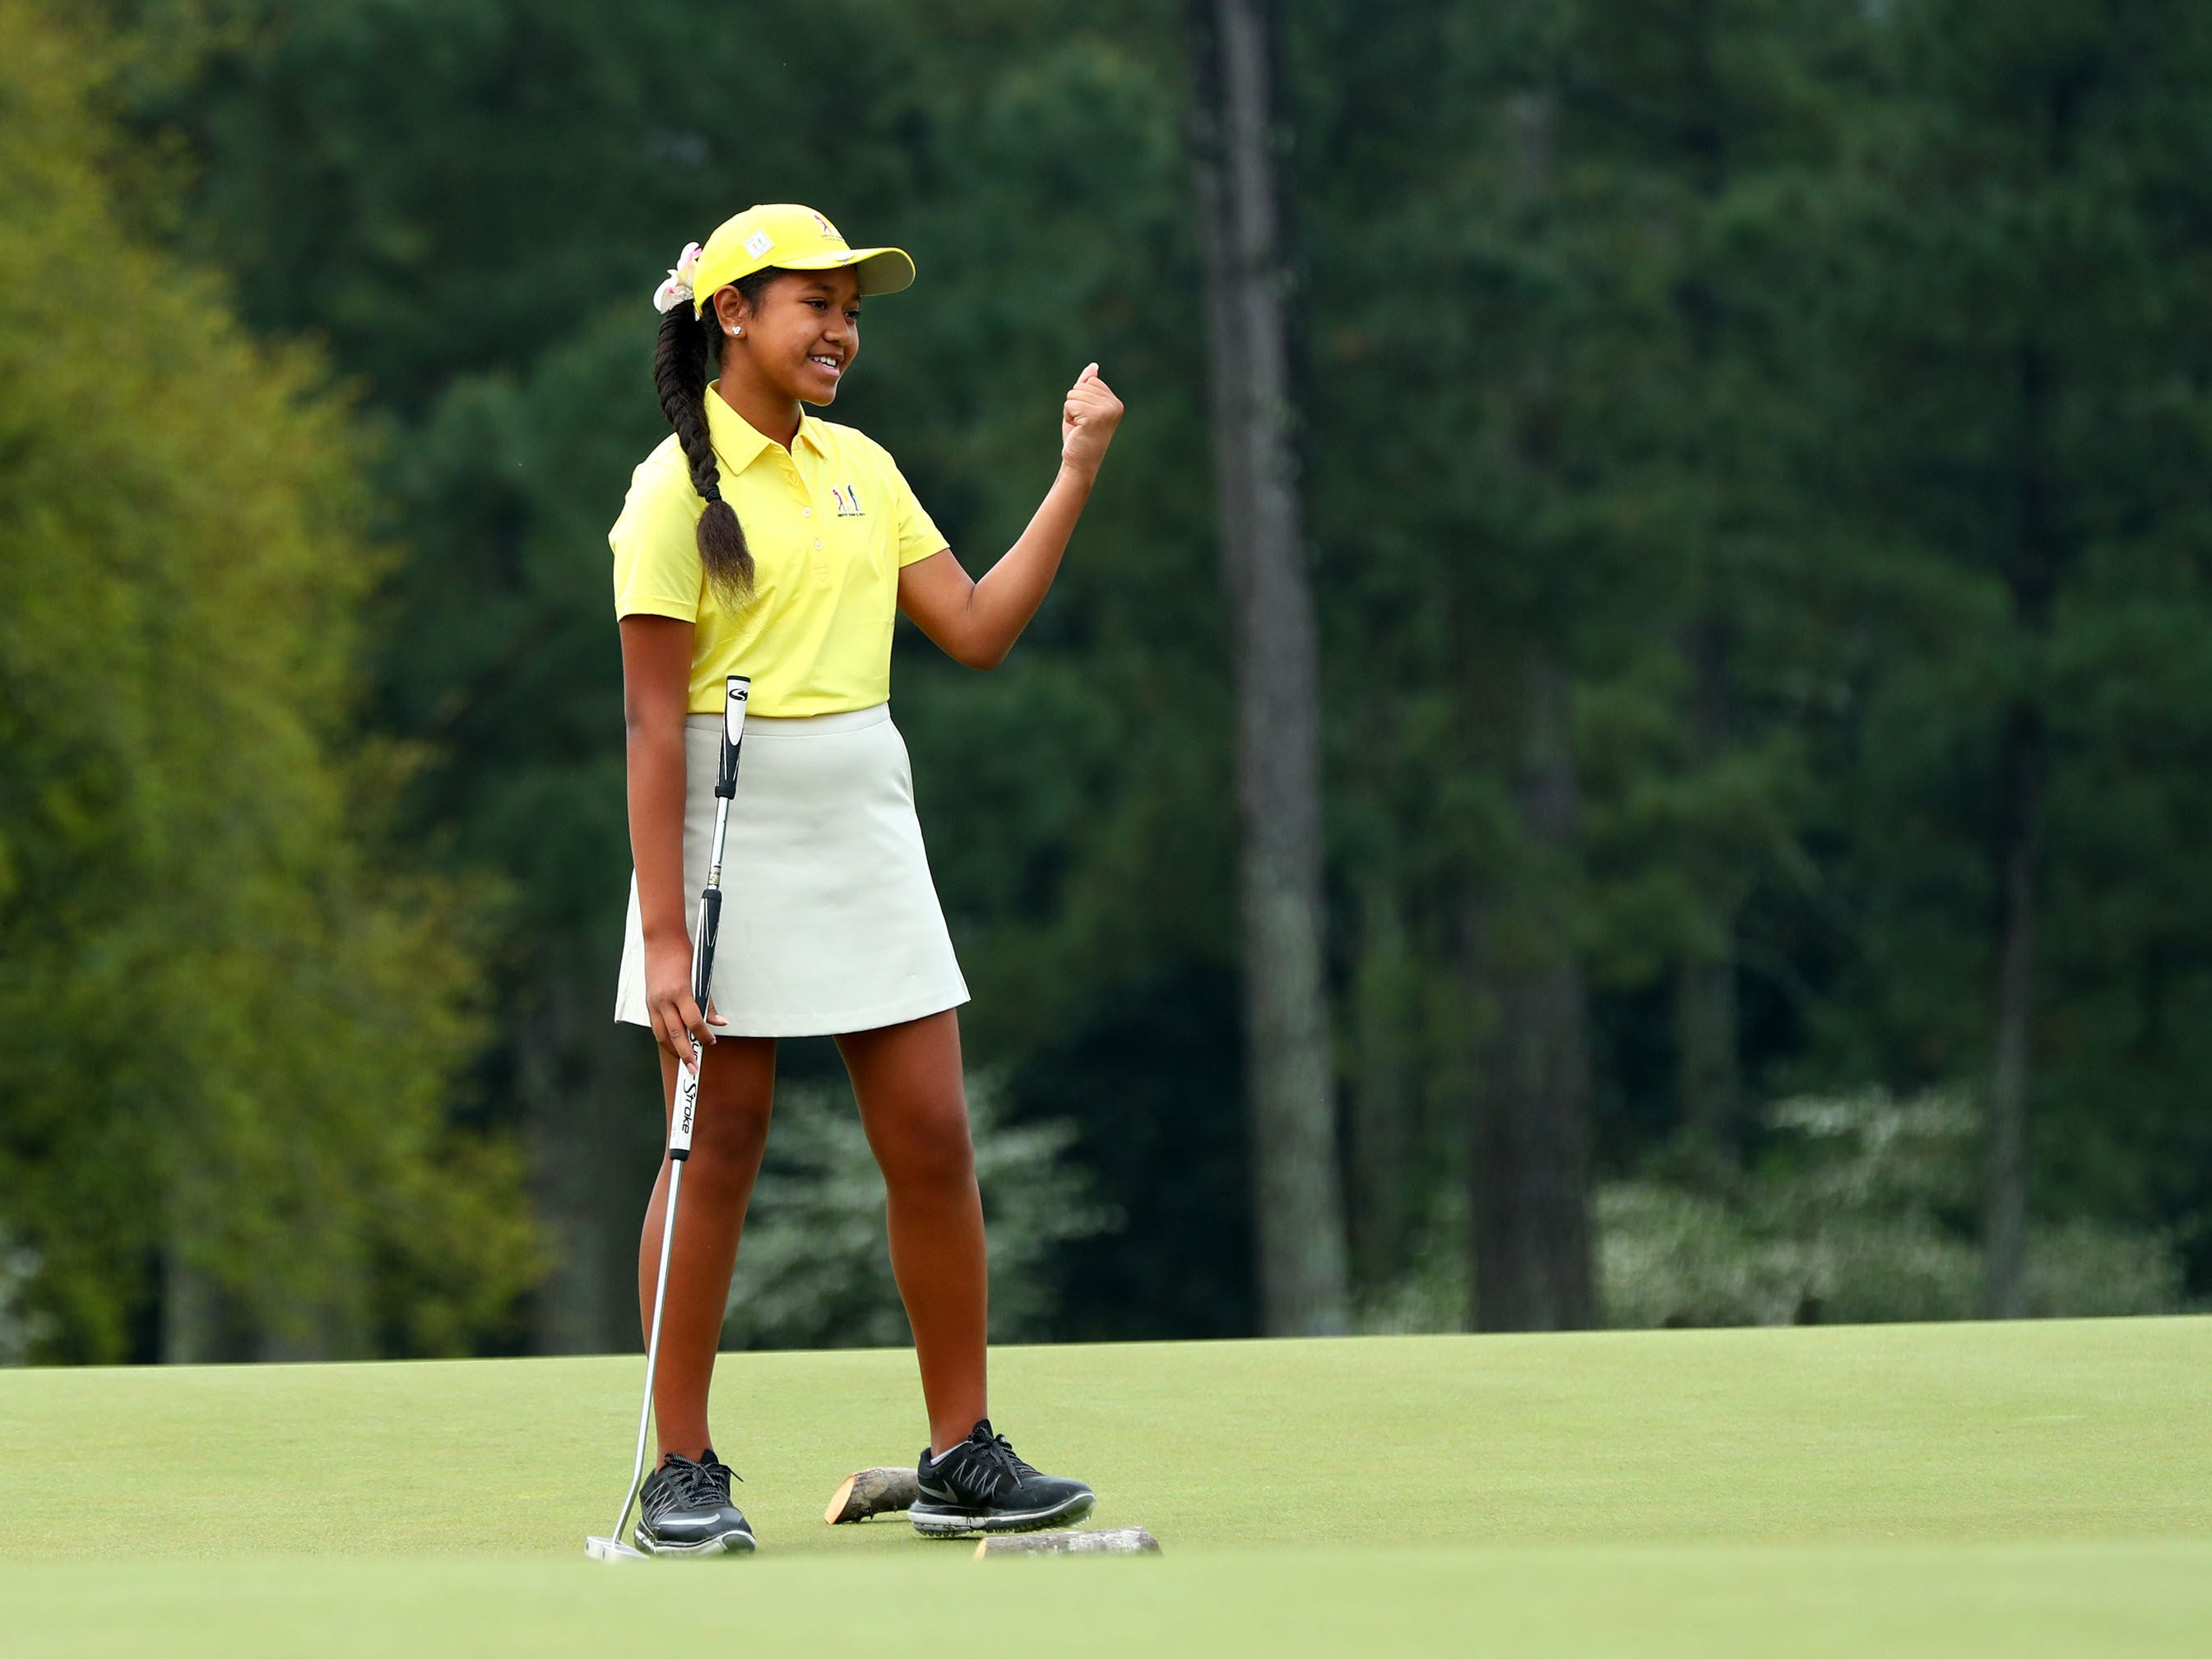 Apr 7, 2019: Alexis Vakasiuola of San Tan Valley, Ariz. in the girls 7-9 age group, reacts to her putt during the finals of the Drive, Chip and Putt competition at Augusta National Golf Club.